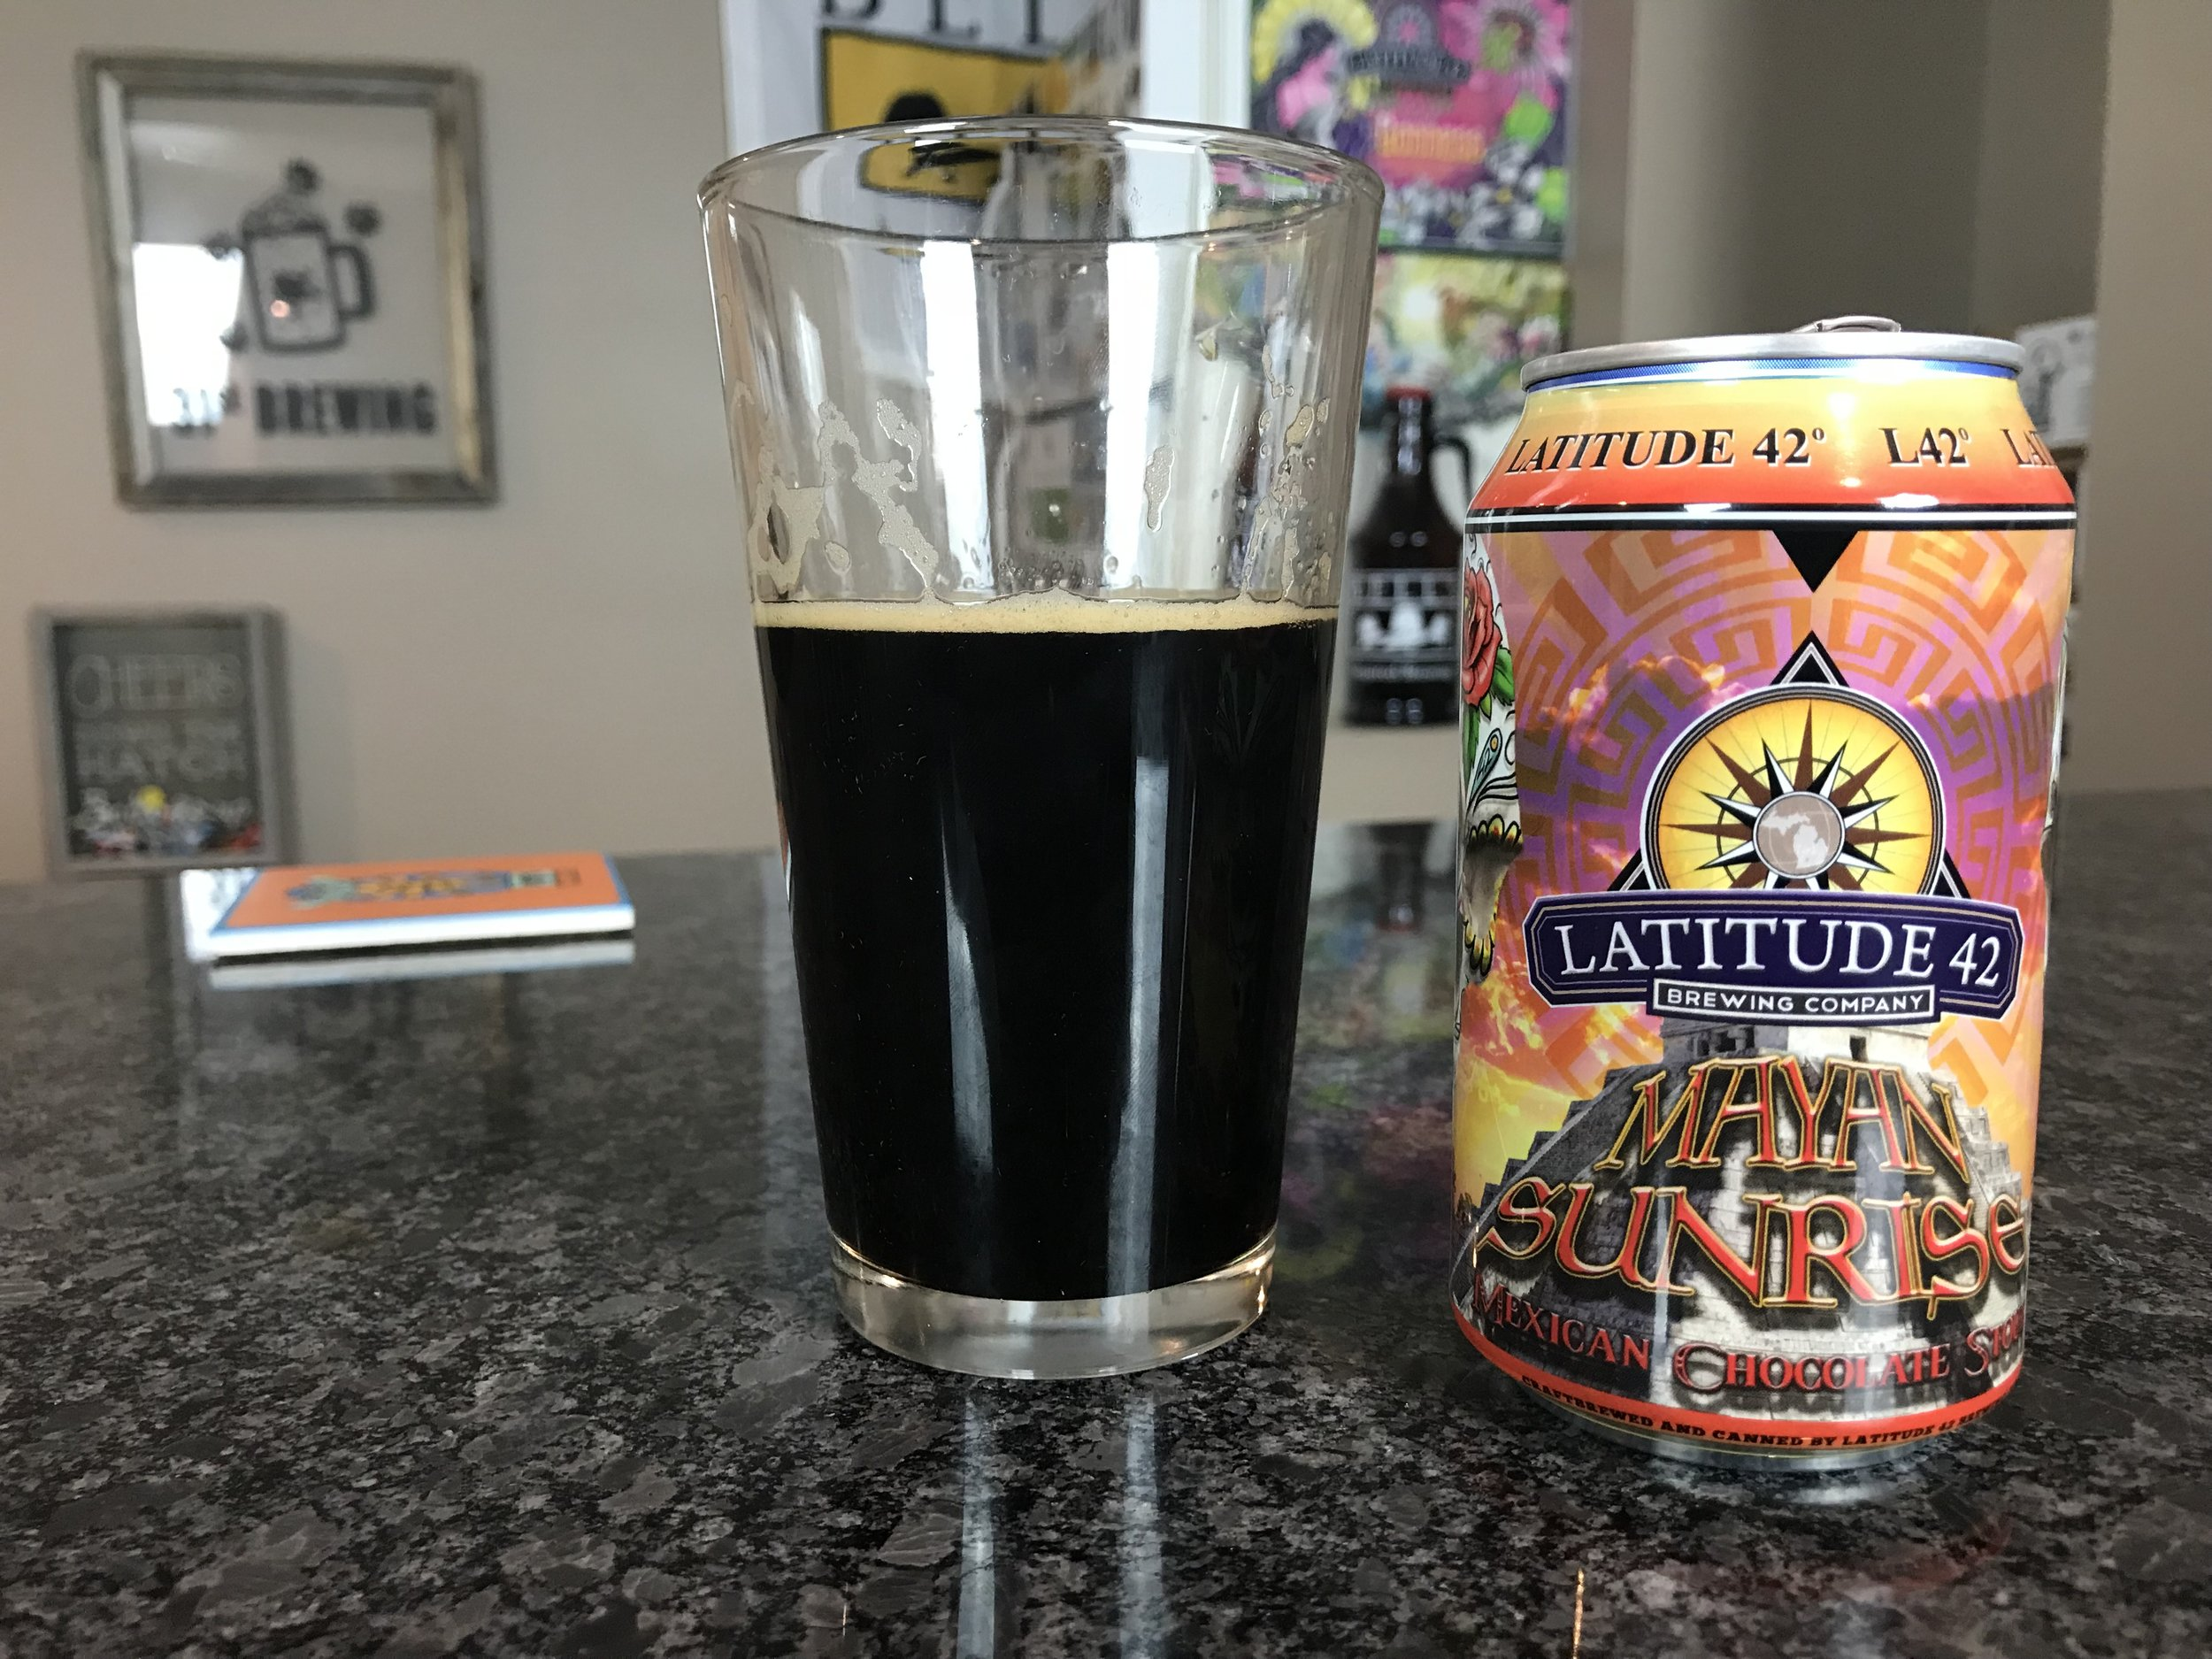 Mayan Sunrise 7% ABV - Want to see the Video review? Click on the image.